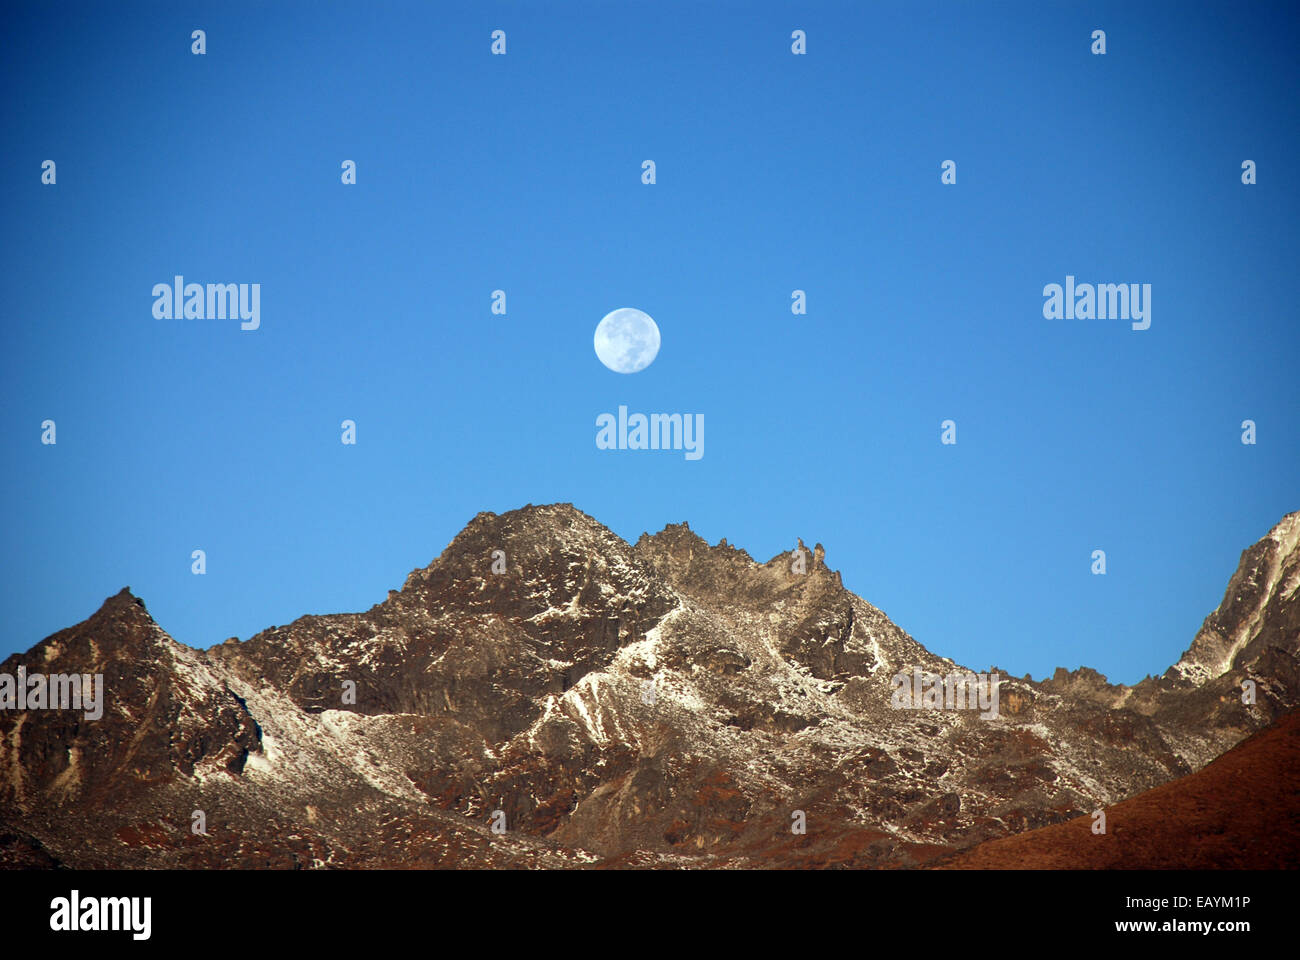 The moon rises above the Himalayan foothills in the Indian state of Sikkim - Stock Image